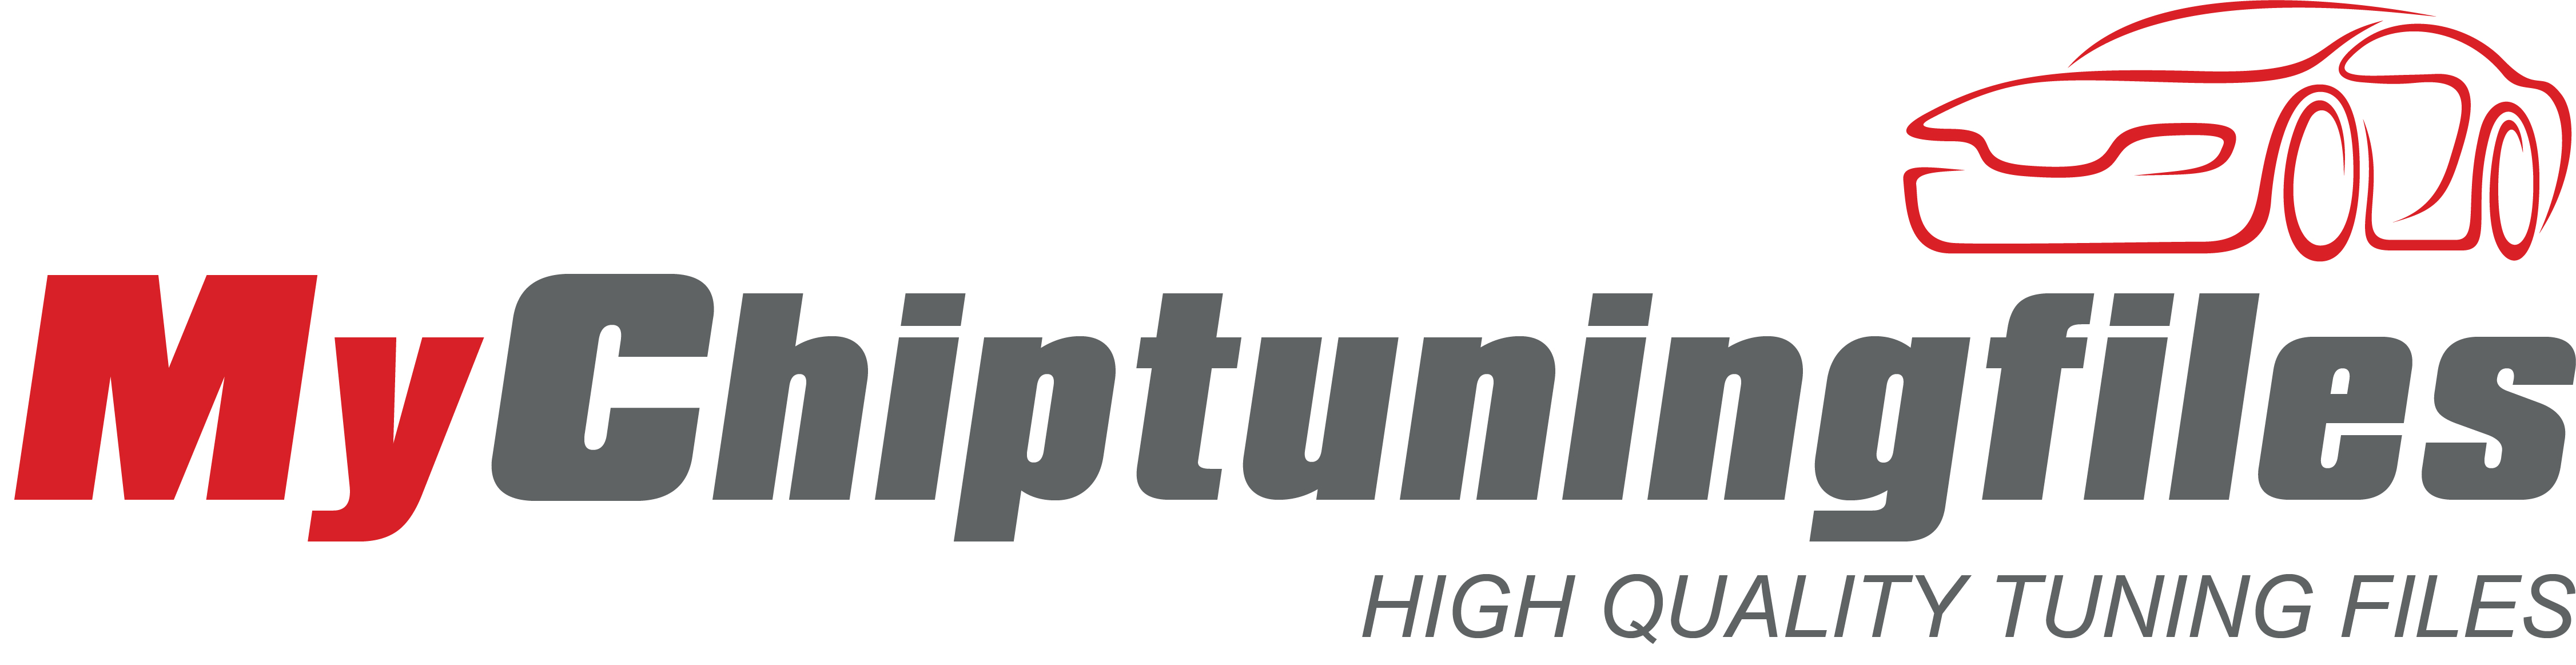 My Chiptuningfiles logo